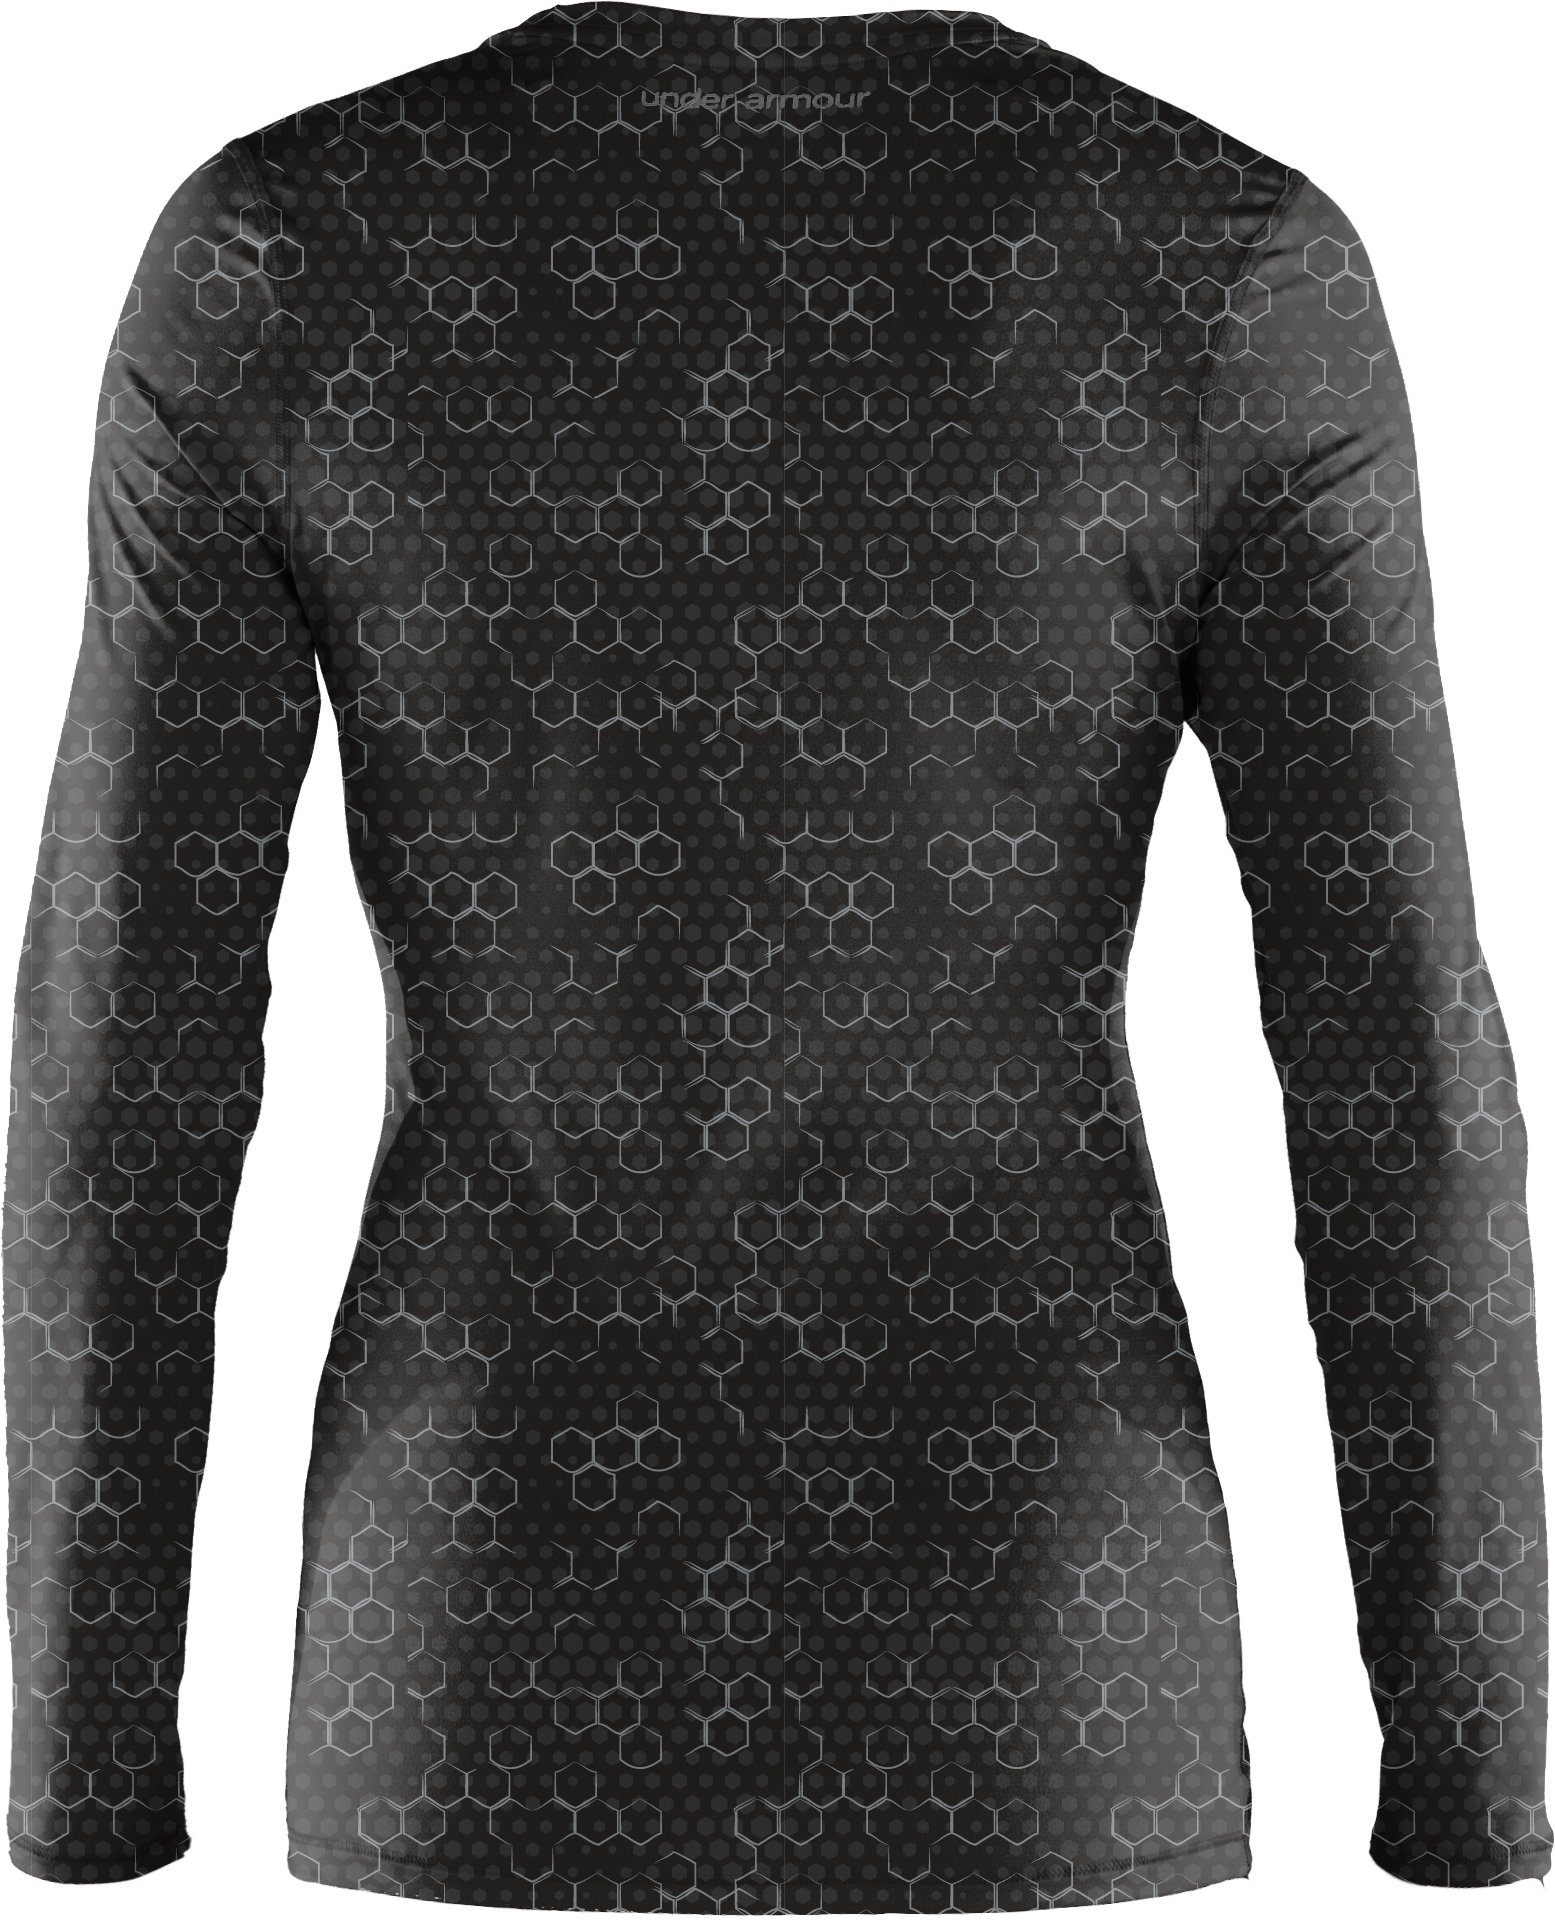 Women's HeatGear® Sonic Printed Long Sleeve, Black , undefined